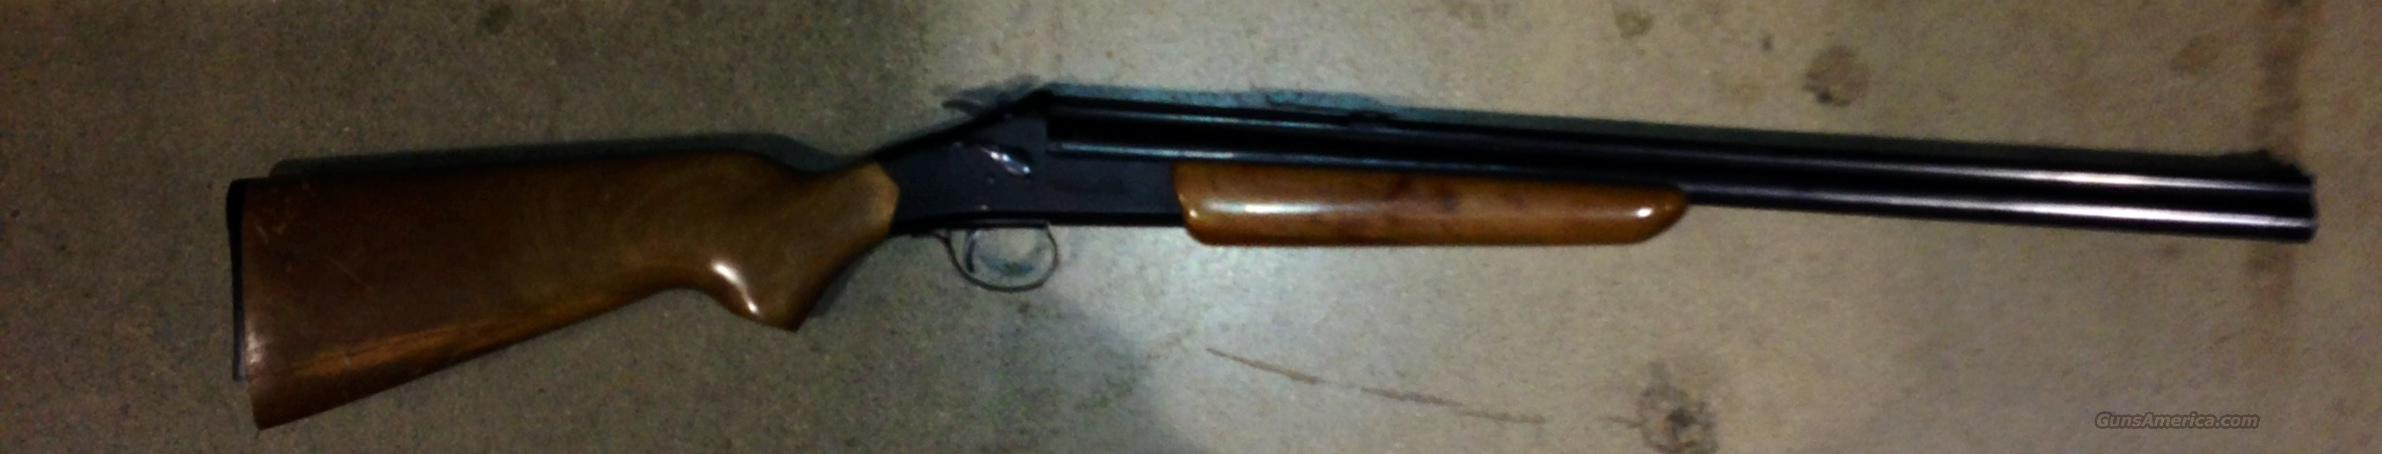 MODEL 24 S  ***  .22LONG RIFLE over 20 GAUGE COMBINATION GUN *** $229.00  Guns > Shotguns > Savage Shotguns